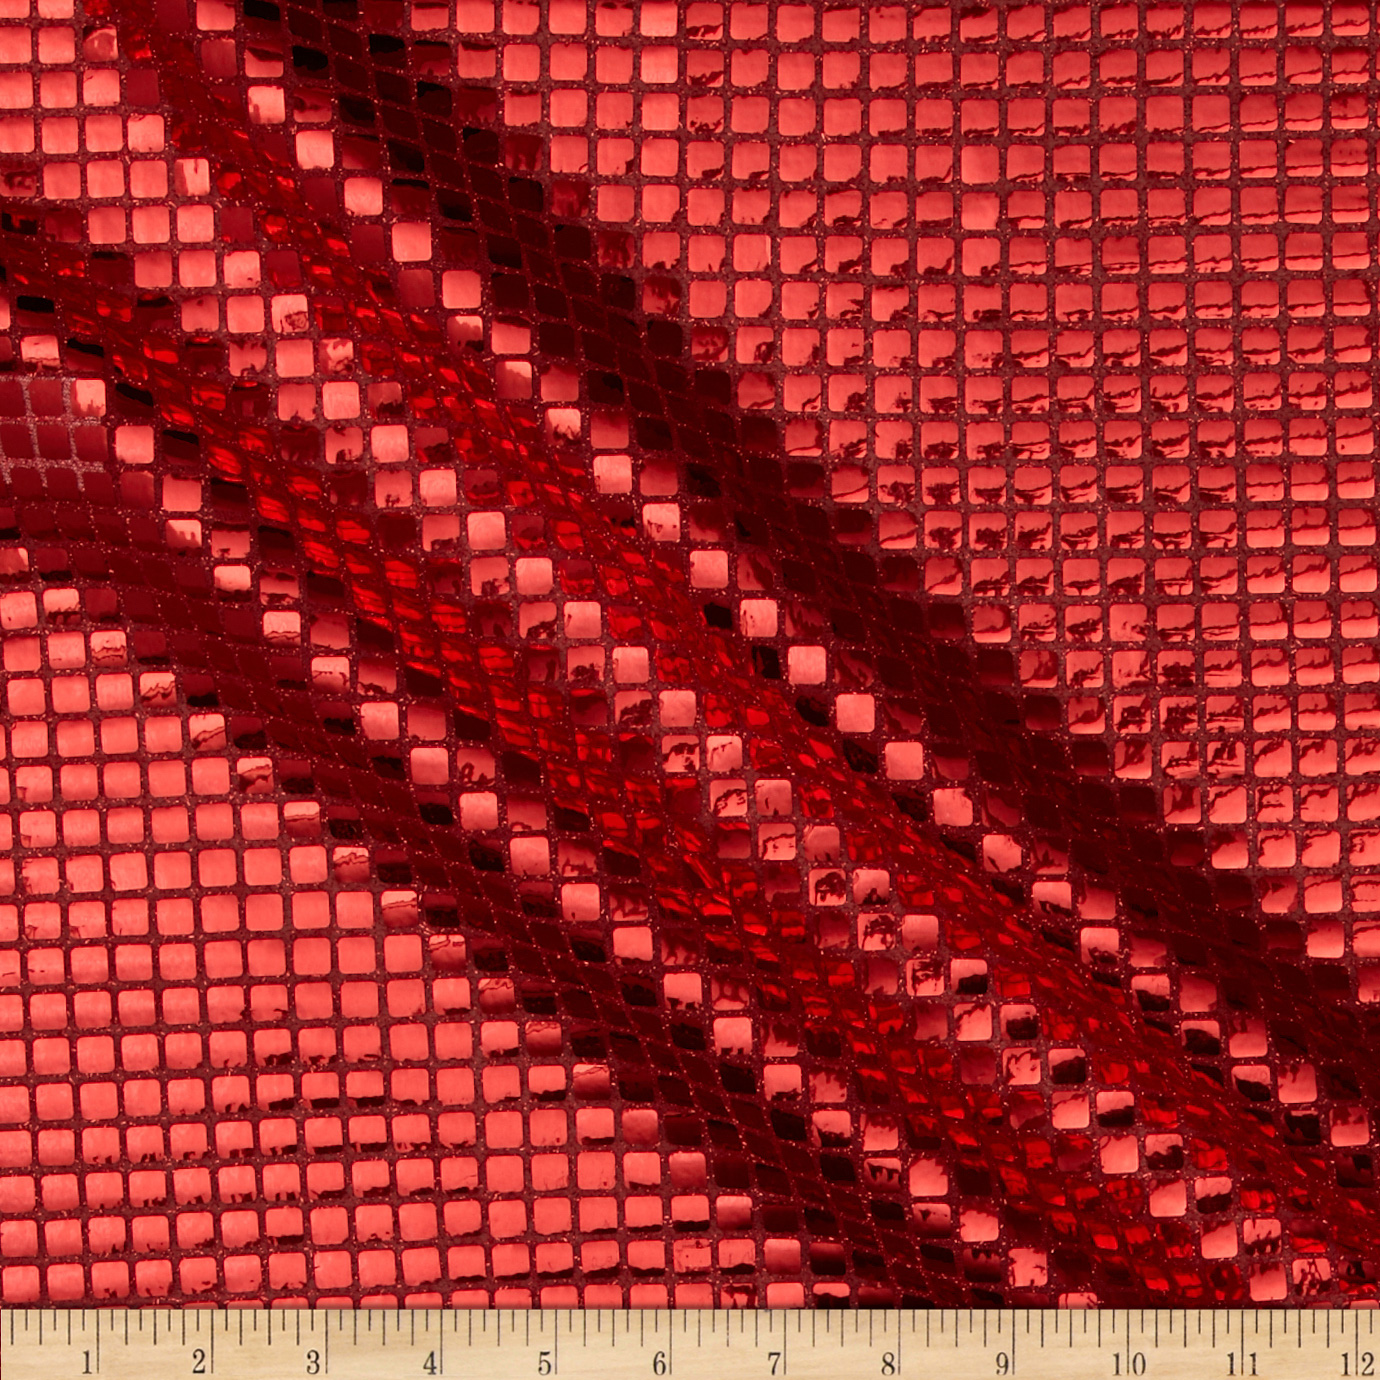 Sequin Check Mesh Red Fabric by Richland in USA